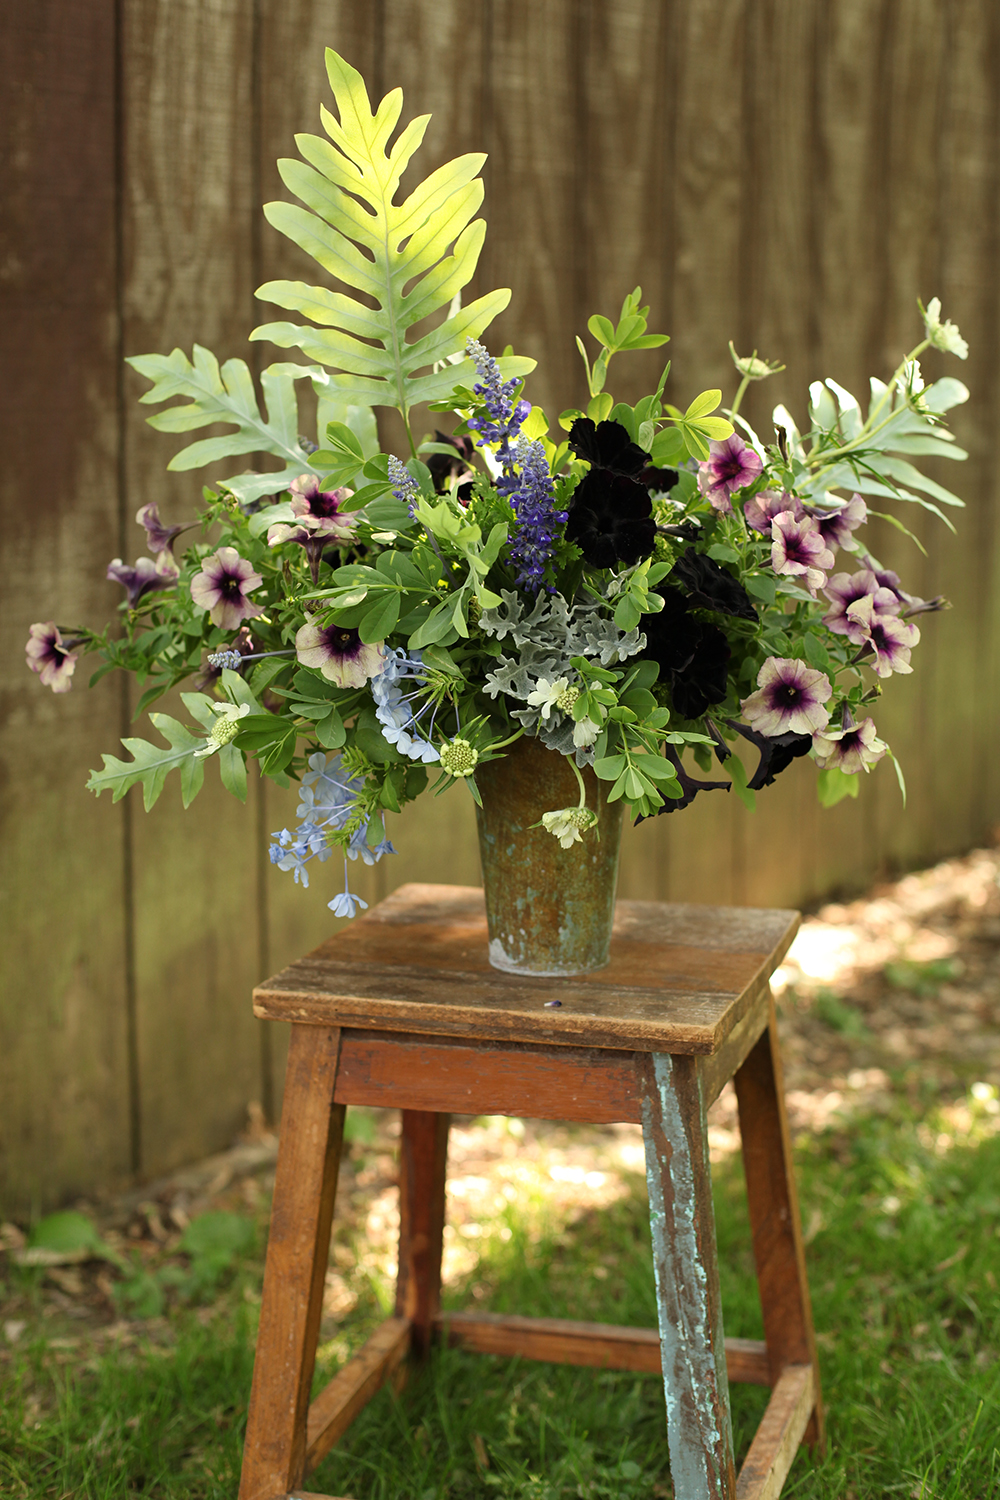 centerpiece by florist Floral Verde LLC in Cincinnati, Ohio; with Petunia 'Black Mamba', Petunia 'Twilight Blue', Salvia 'Victoria Blue', Plumbago 'Escapade Blue', Baptisia australis, Blue Star fern, dusty miller, green trachelium, Scented Geranium 'Citronella' and white scabiosa.